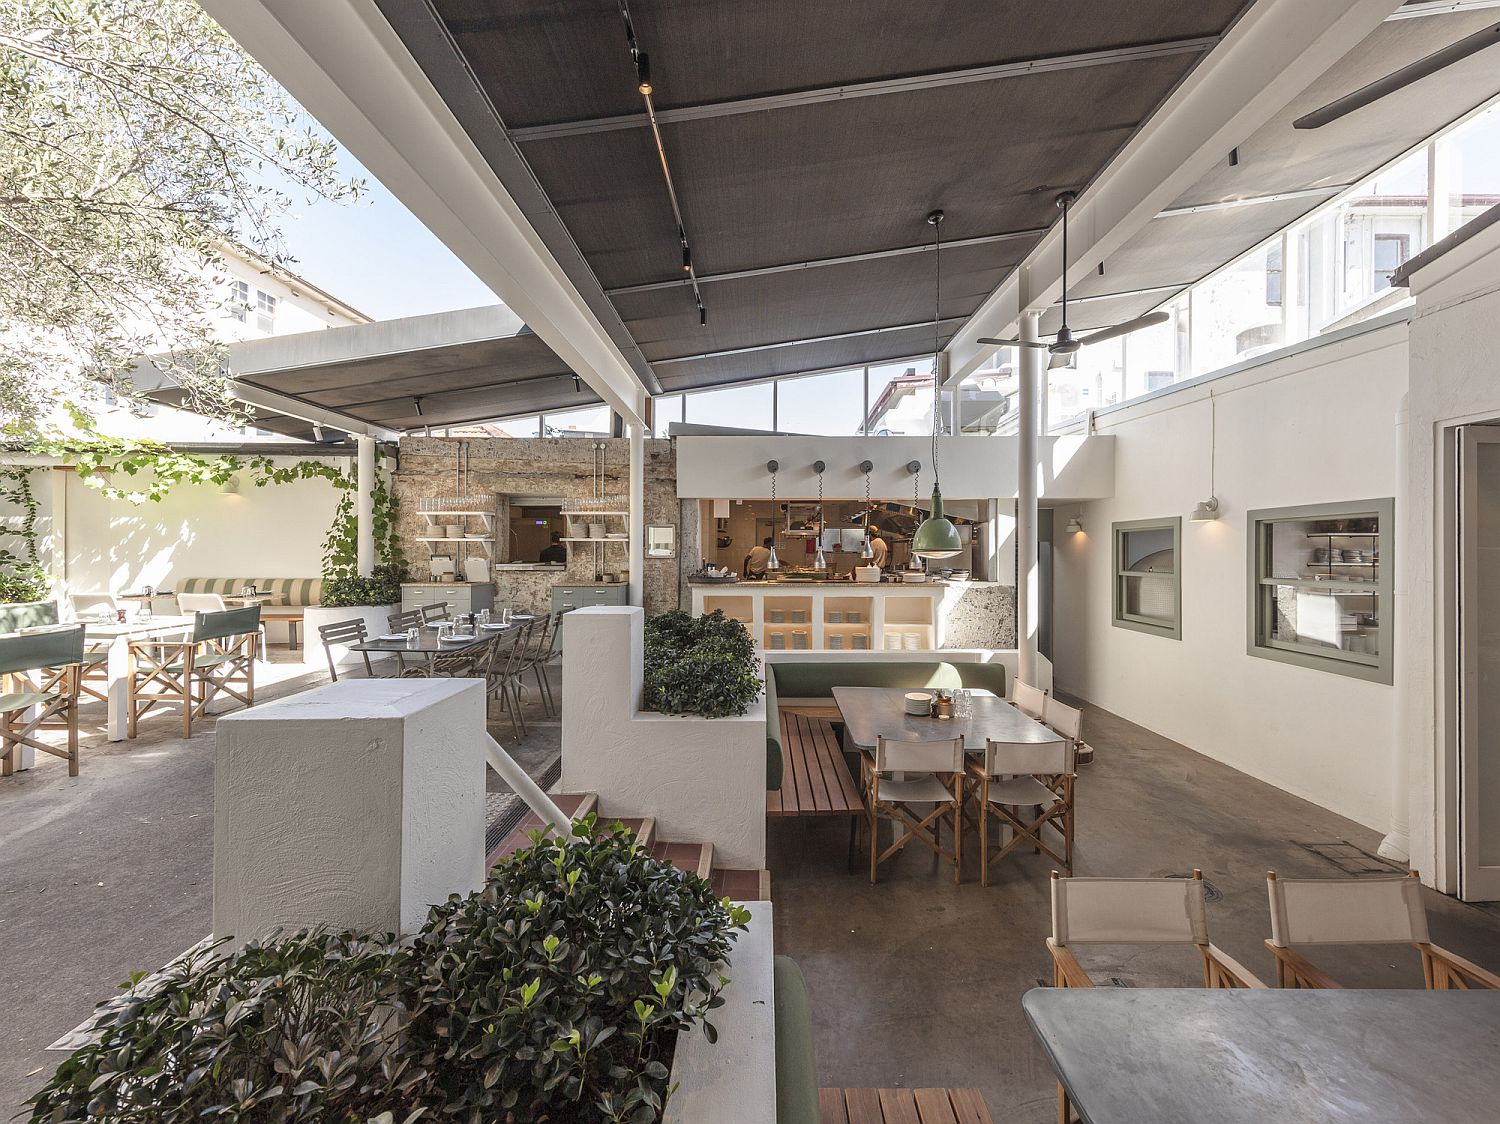 Totti's courtyard adds greenery to the setting